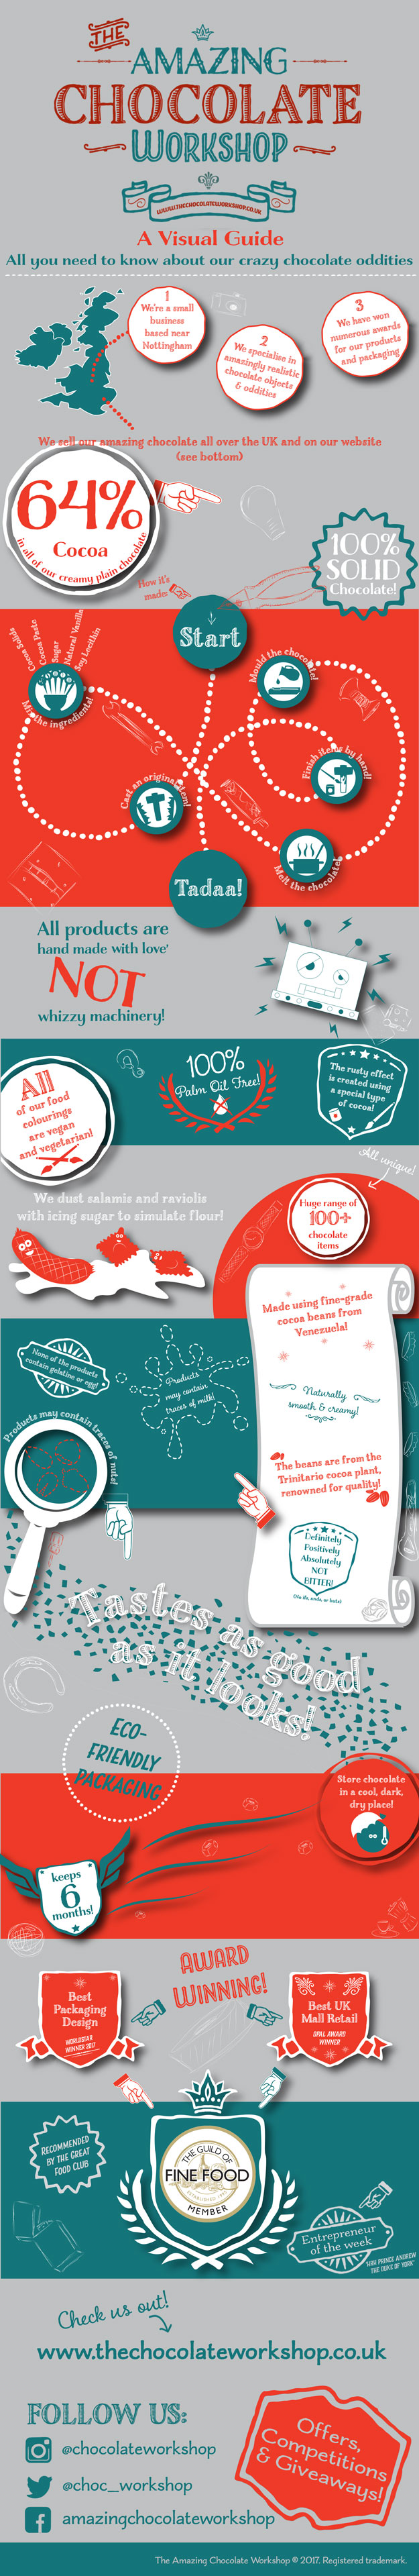 Amazing Chocolate Workshop Infographic